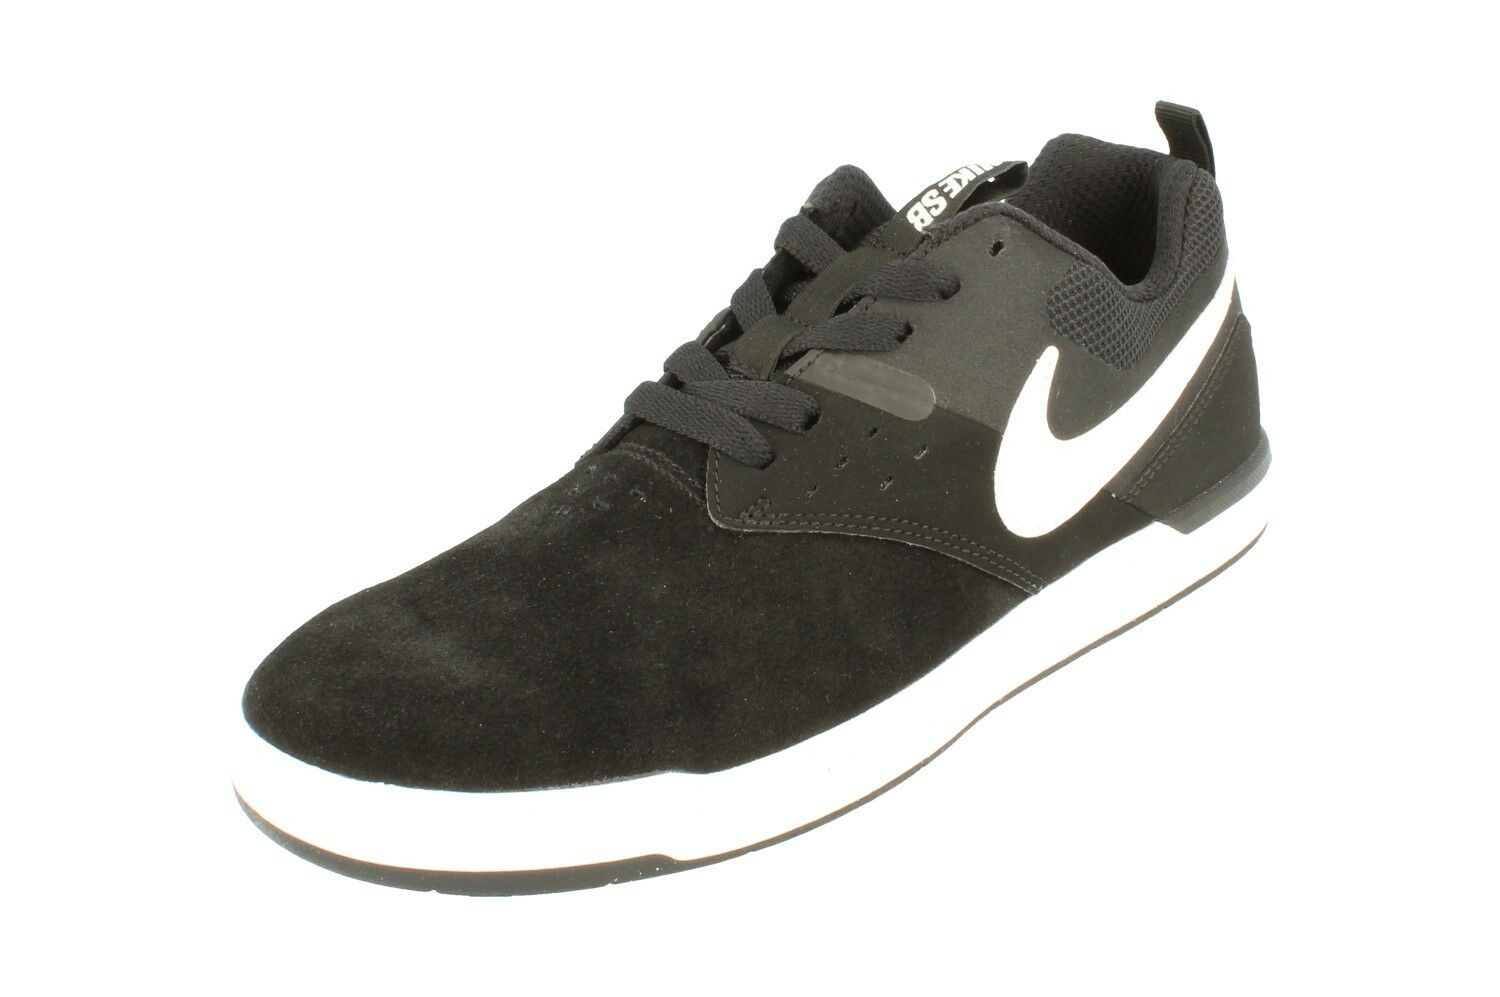 Nike Nike Nike SB Zoom ejecta Baskets Homme 749752 Baskets Chaussures 002 d11ced